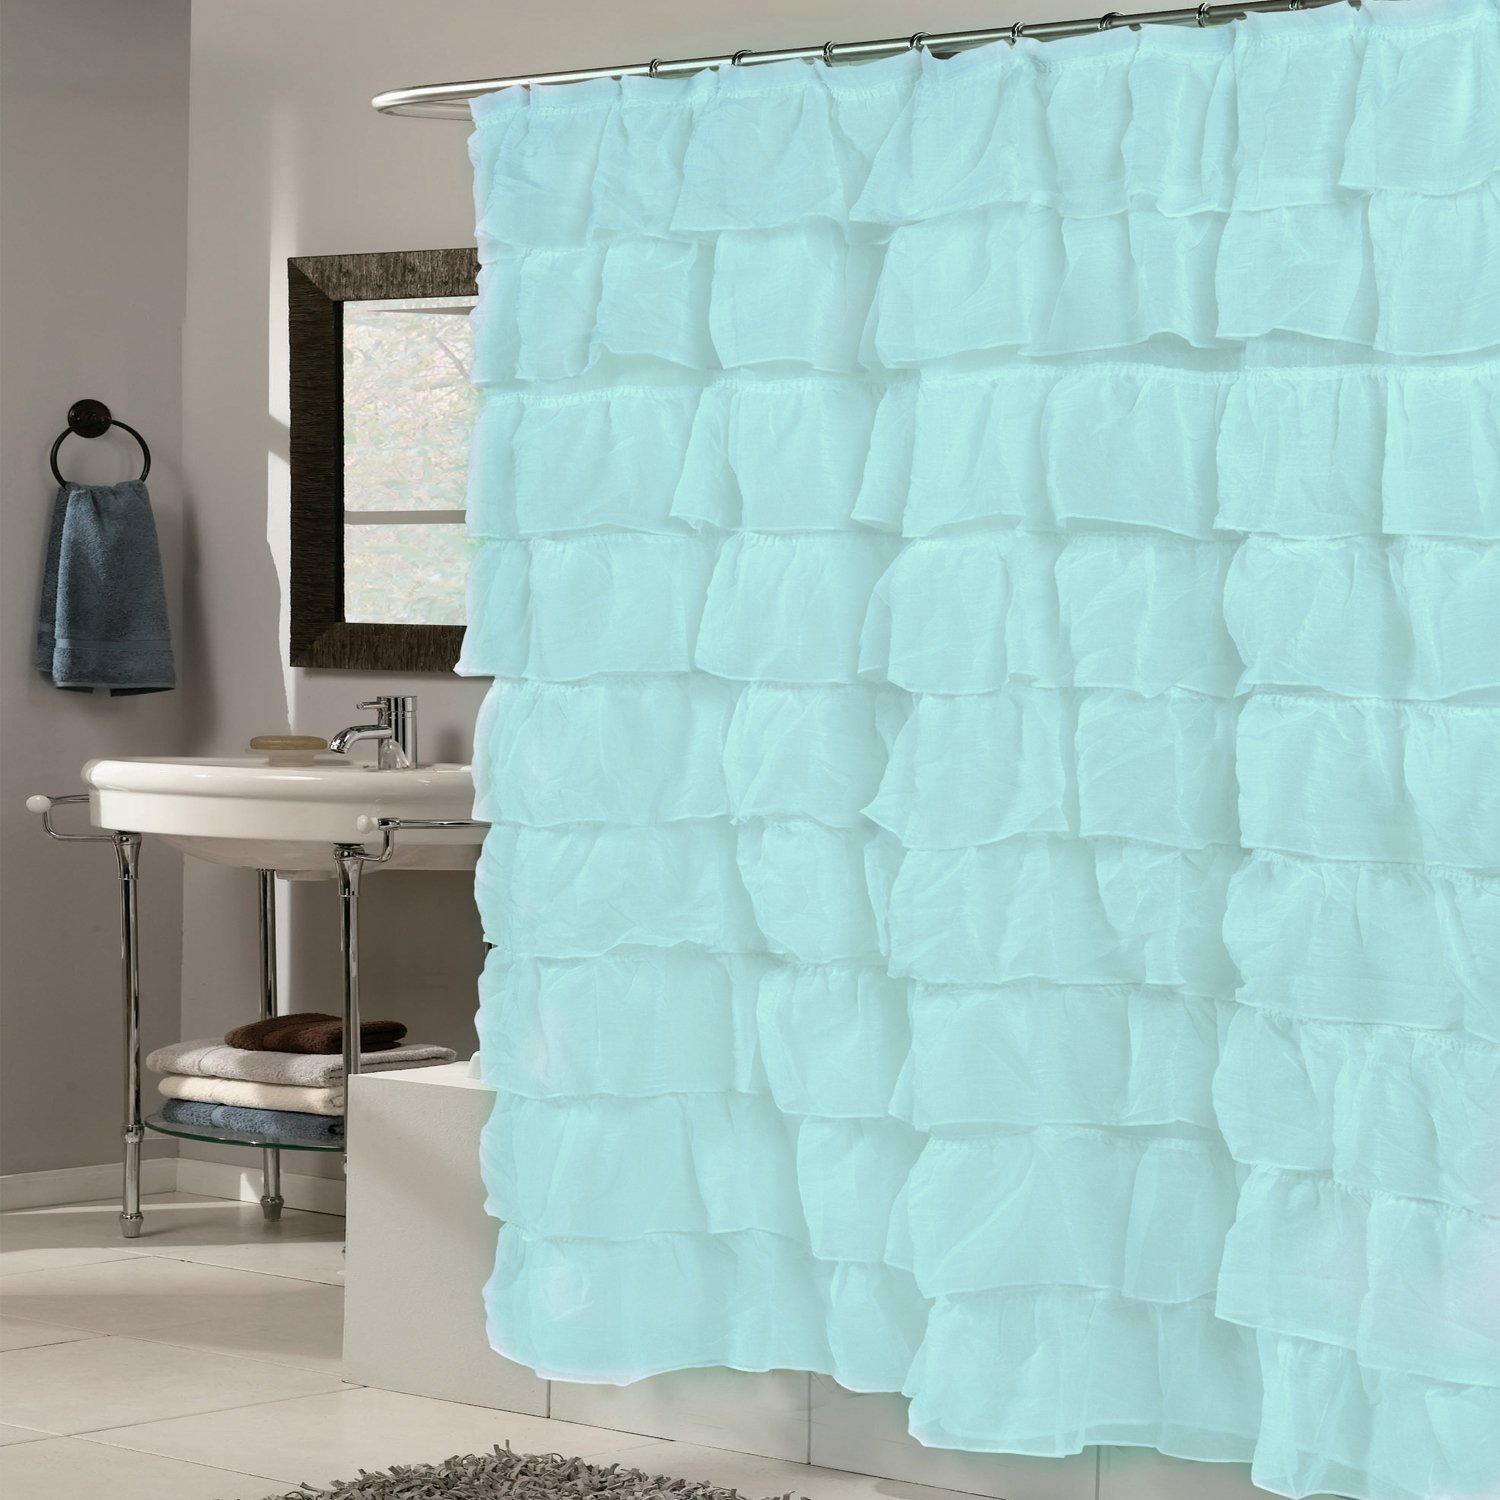 Sweet Home Collection Fabric 70'' x 72'' Shower Curtain with Elegant Crushed Voile Ruffled Tier Water Repellent Durable, Spa Blue